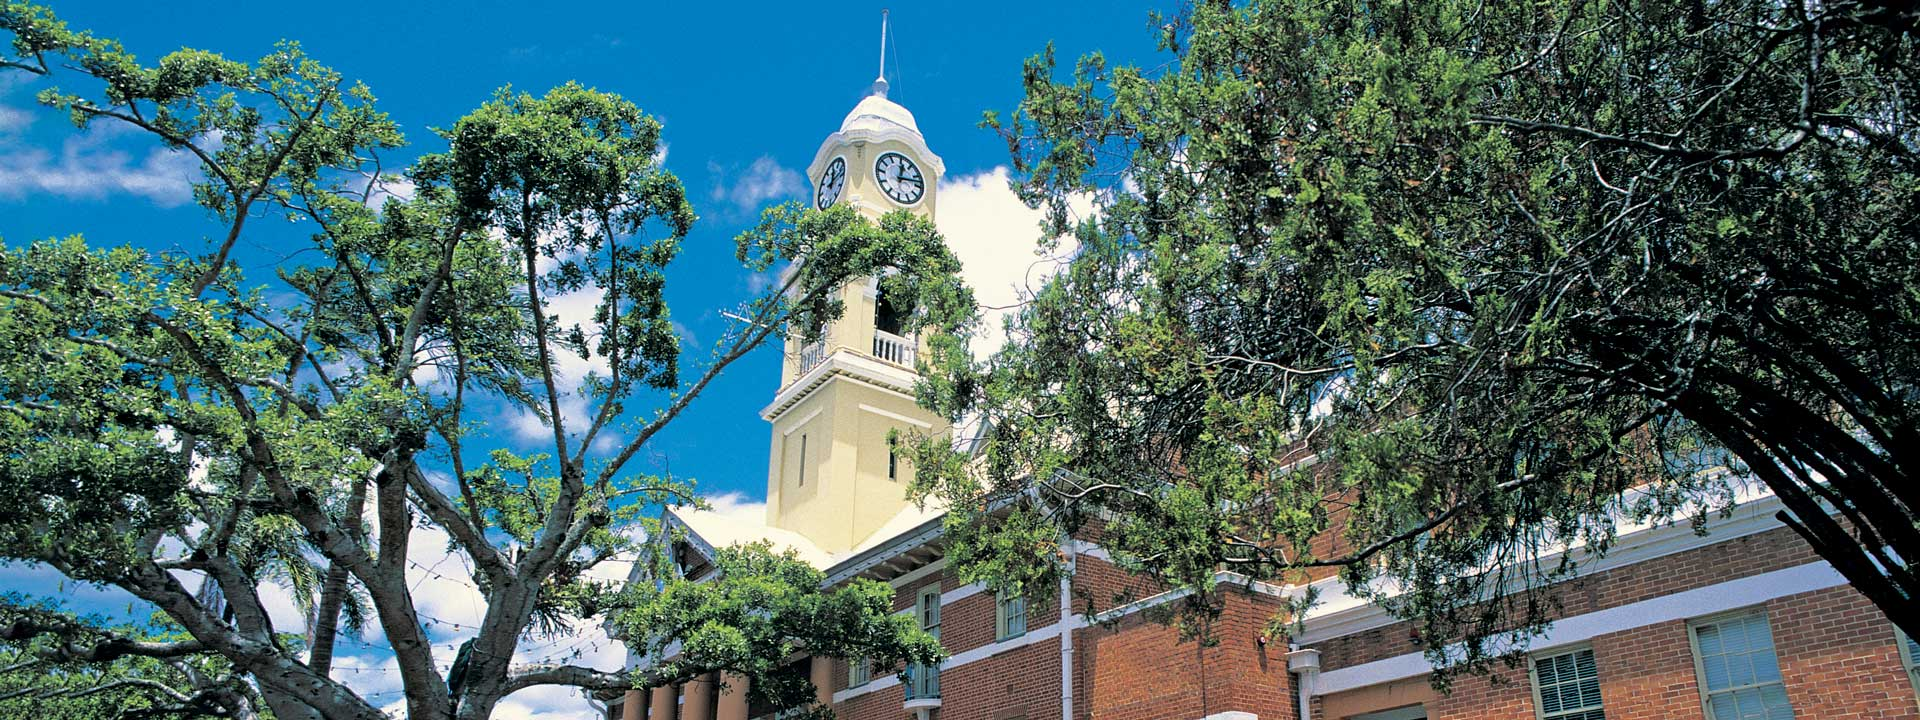 Visit the heritage-listed Town Hall in Maryborough